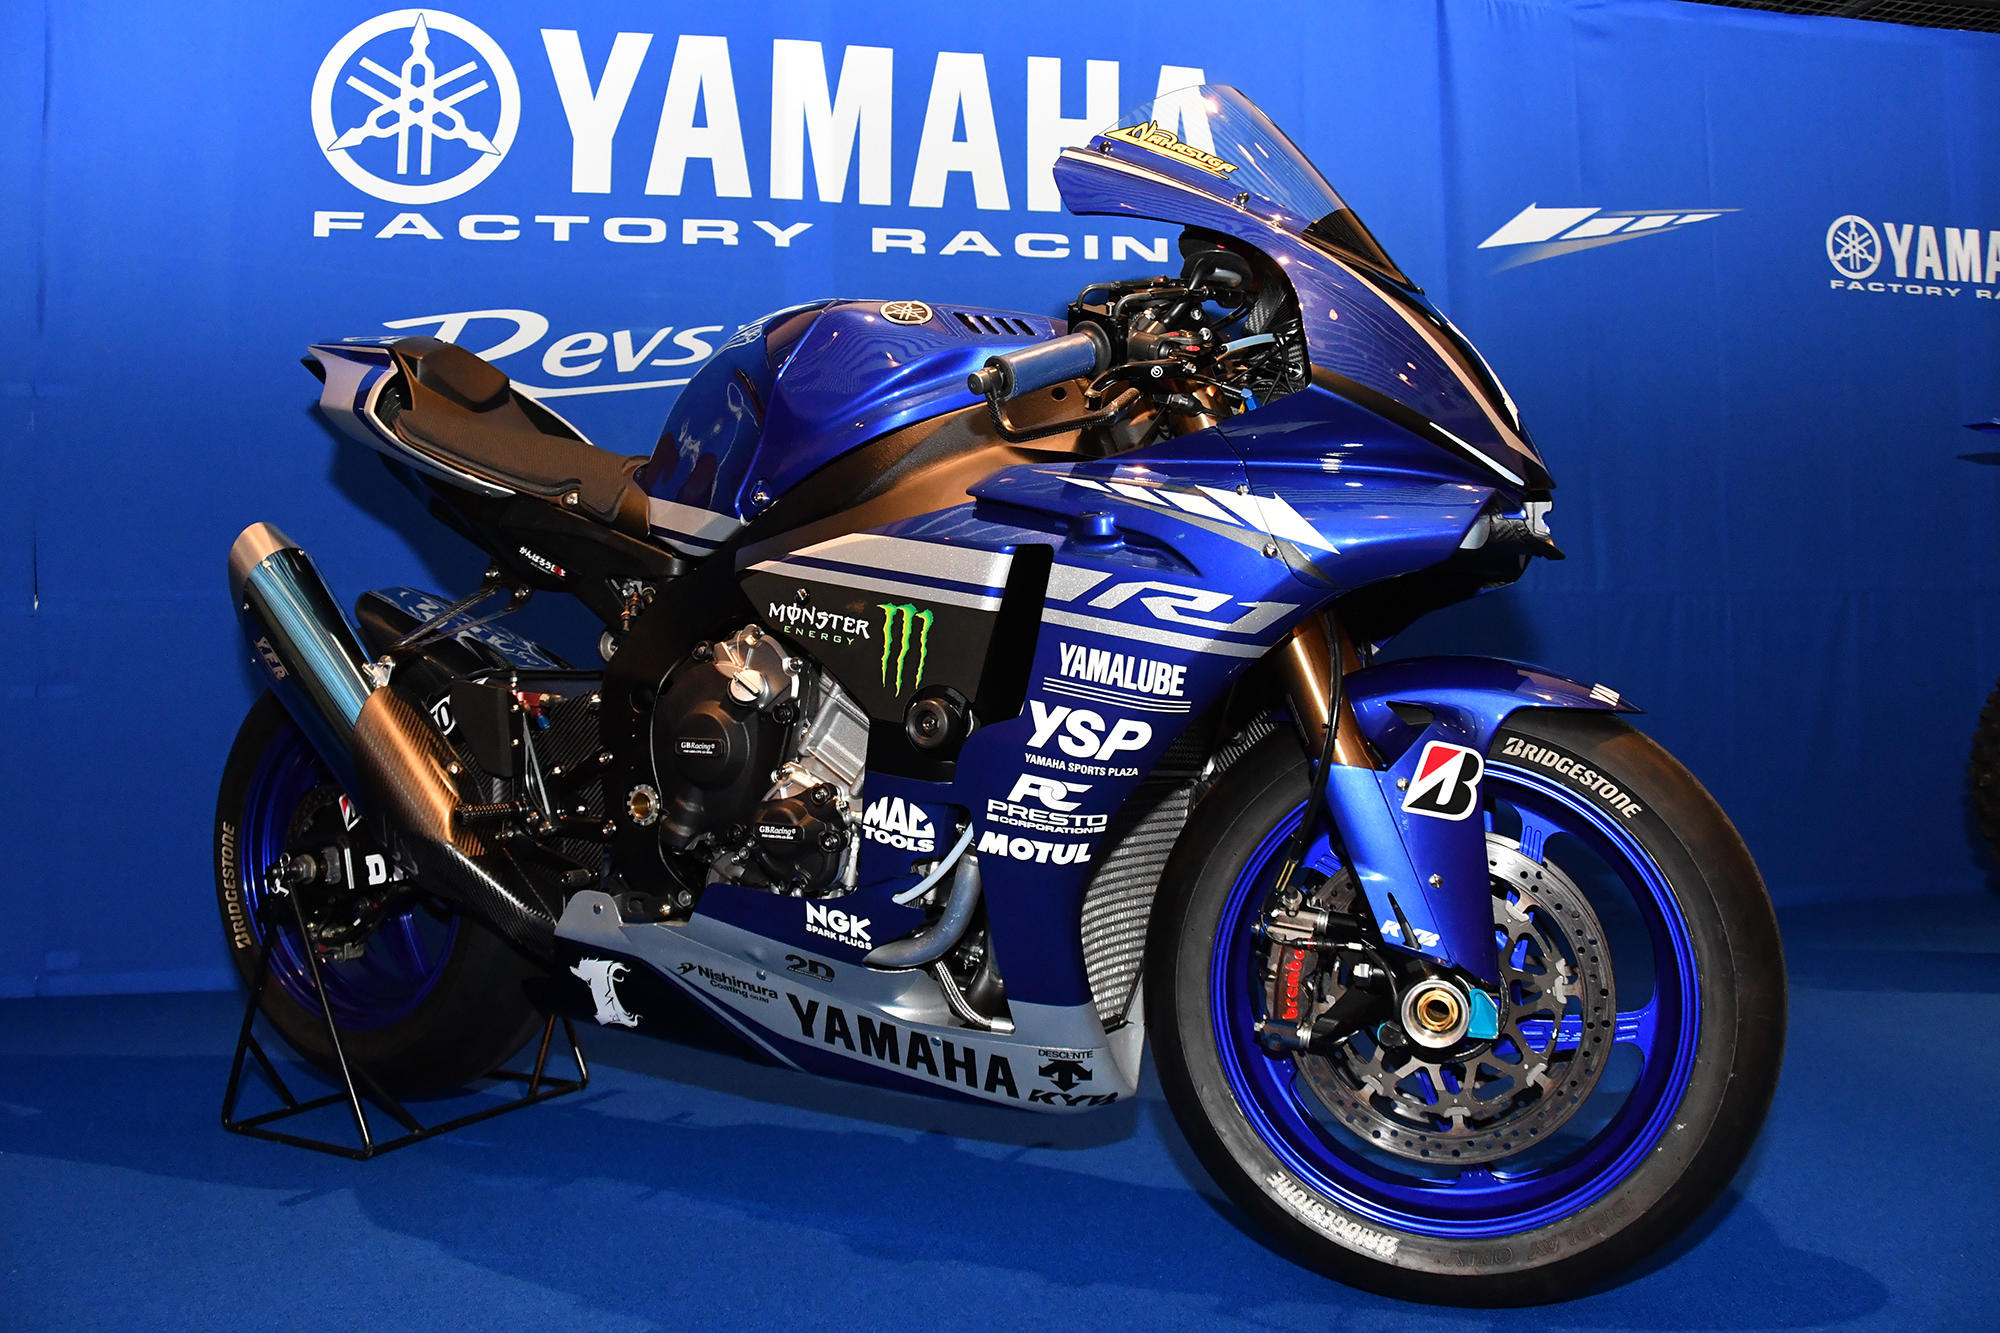 ロードレースJSB1000クラスに参戦、YAMAHA FACTORY RACING TEAMの「YZF-R1」